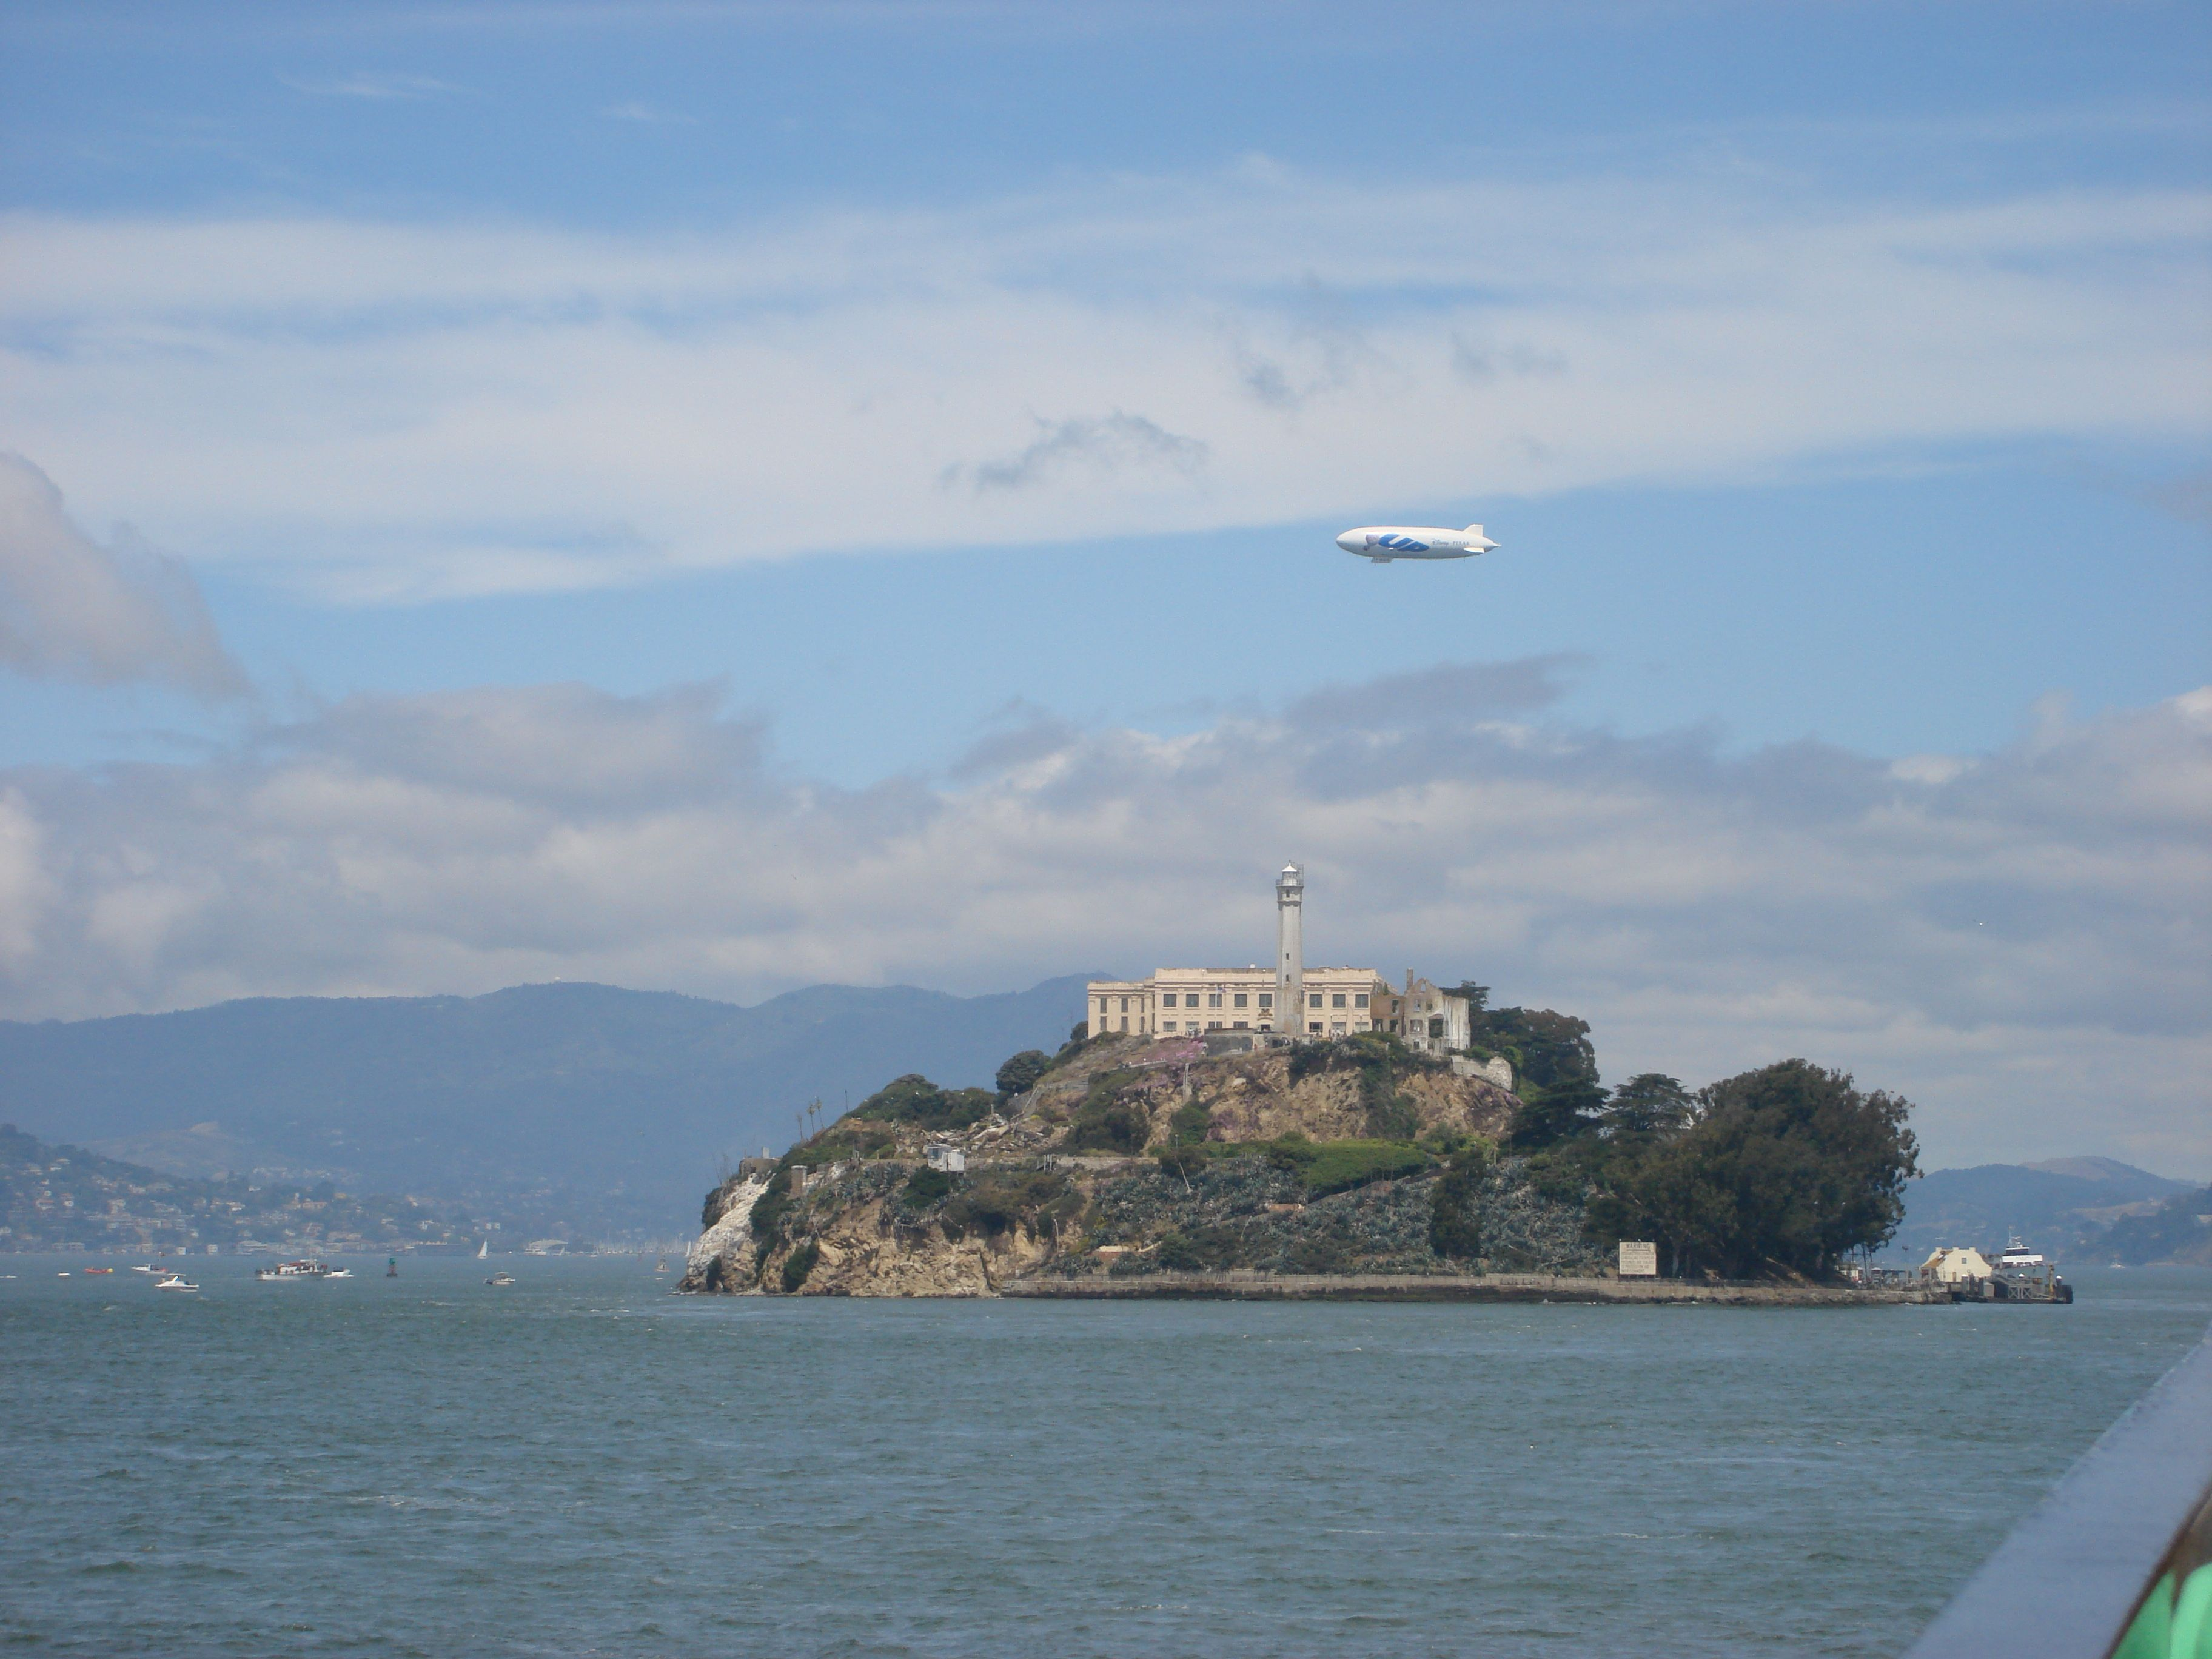 Trip To Alcatraz Island Take A Tour Of The Prison And Enjoy The